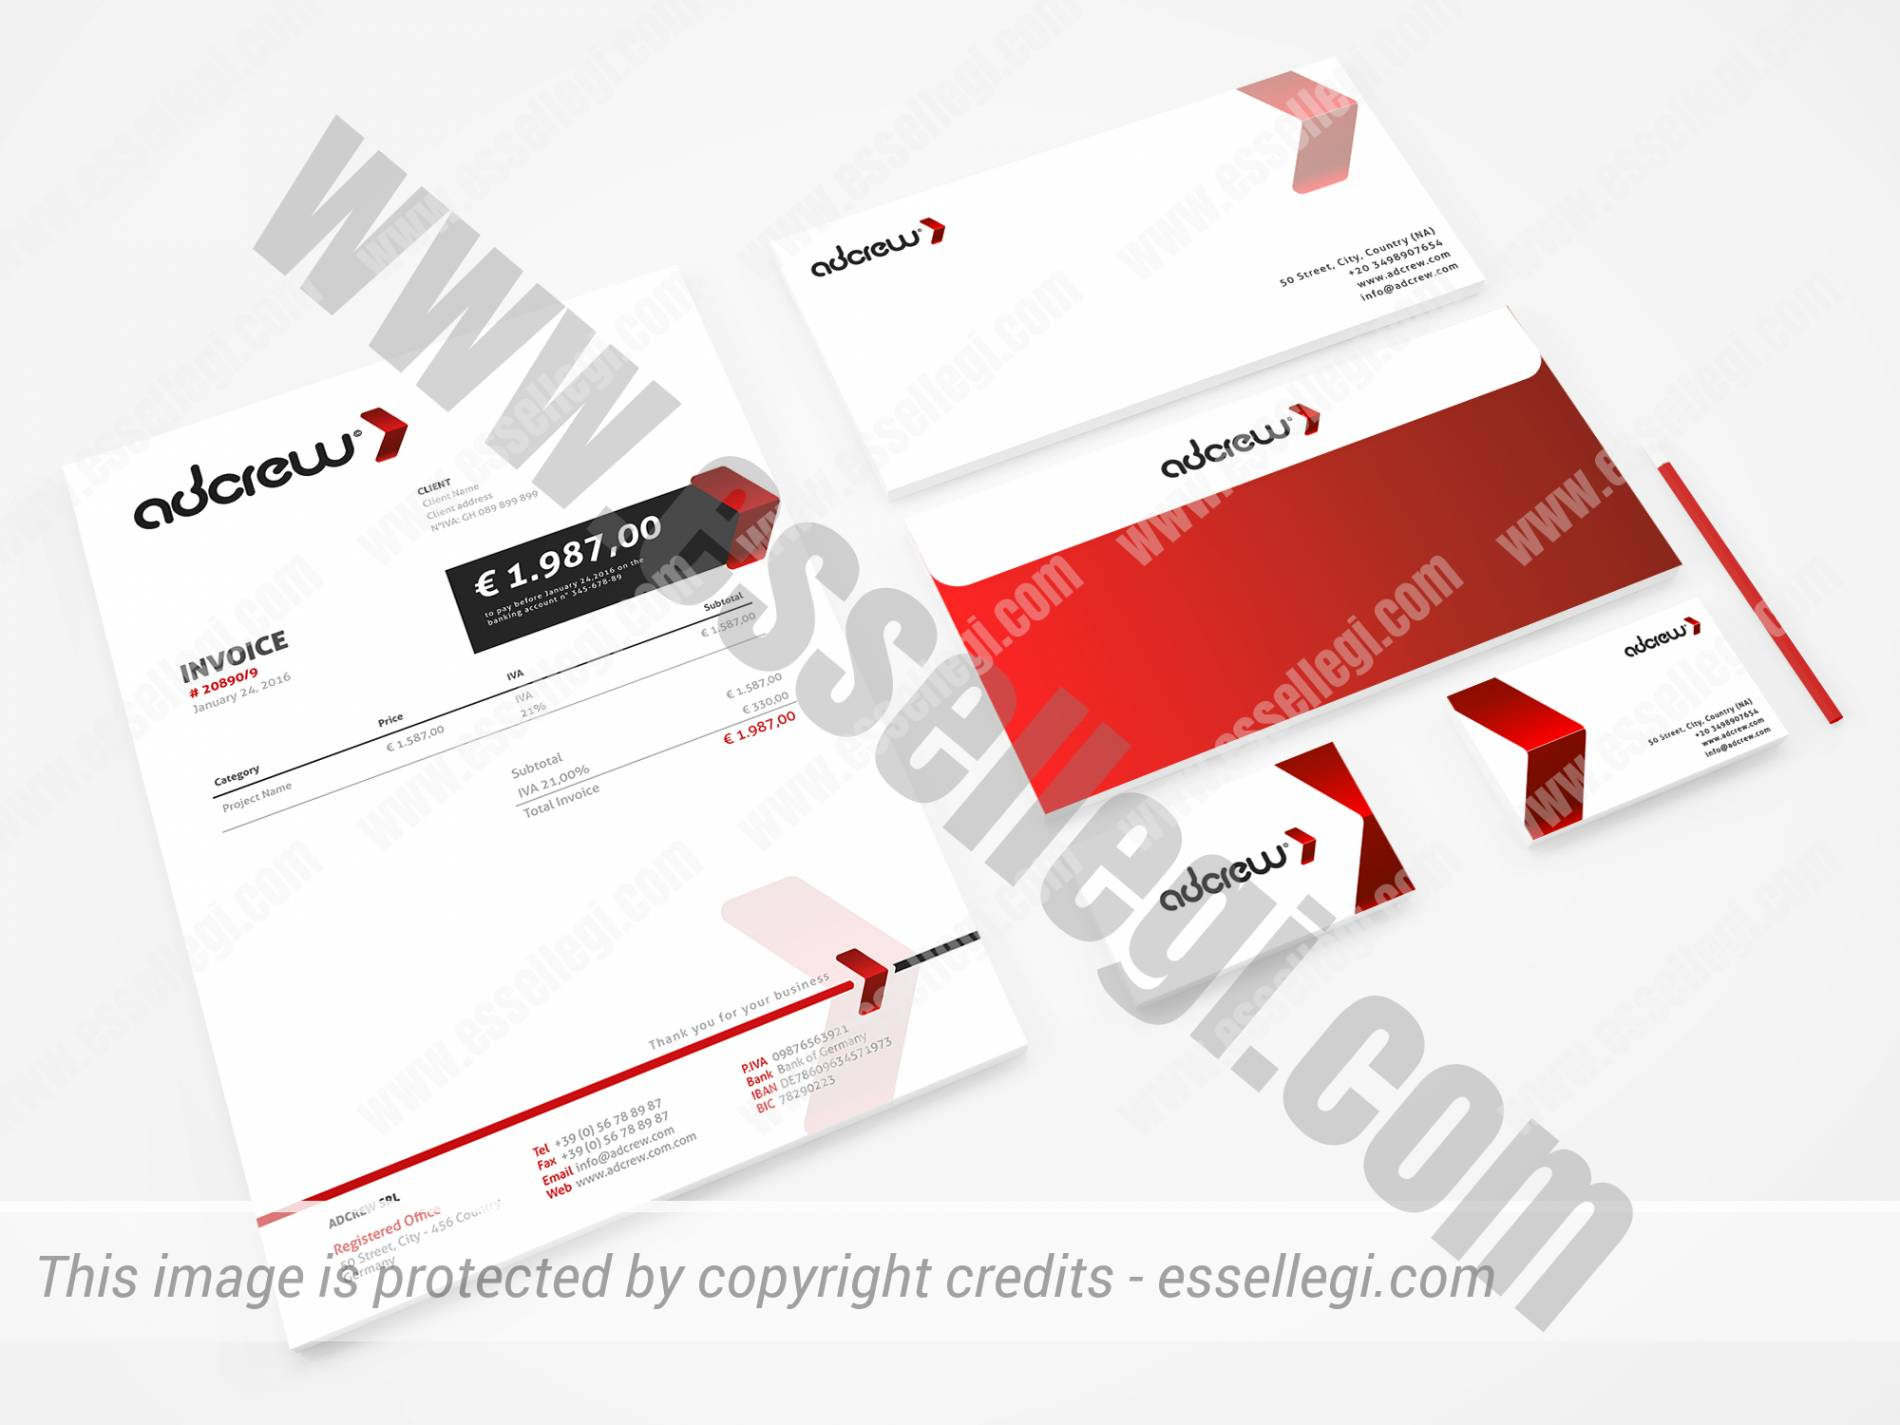 AdCrew Brand Identity Design by Essellegi Design